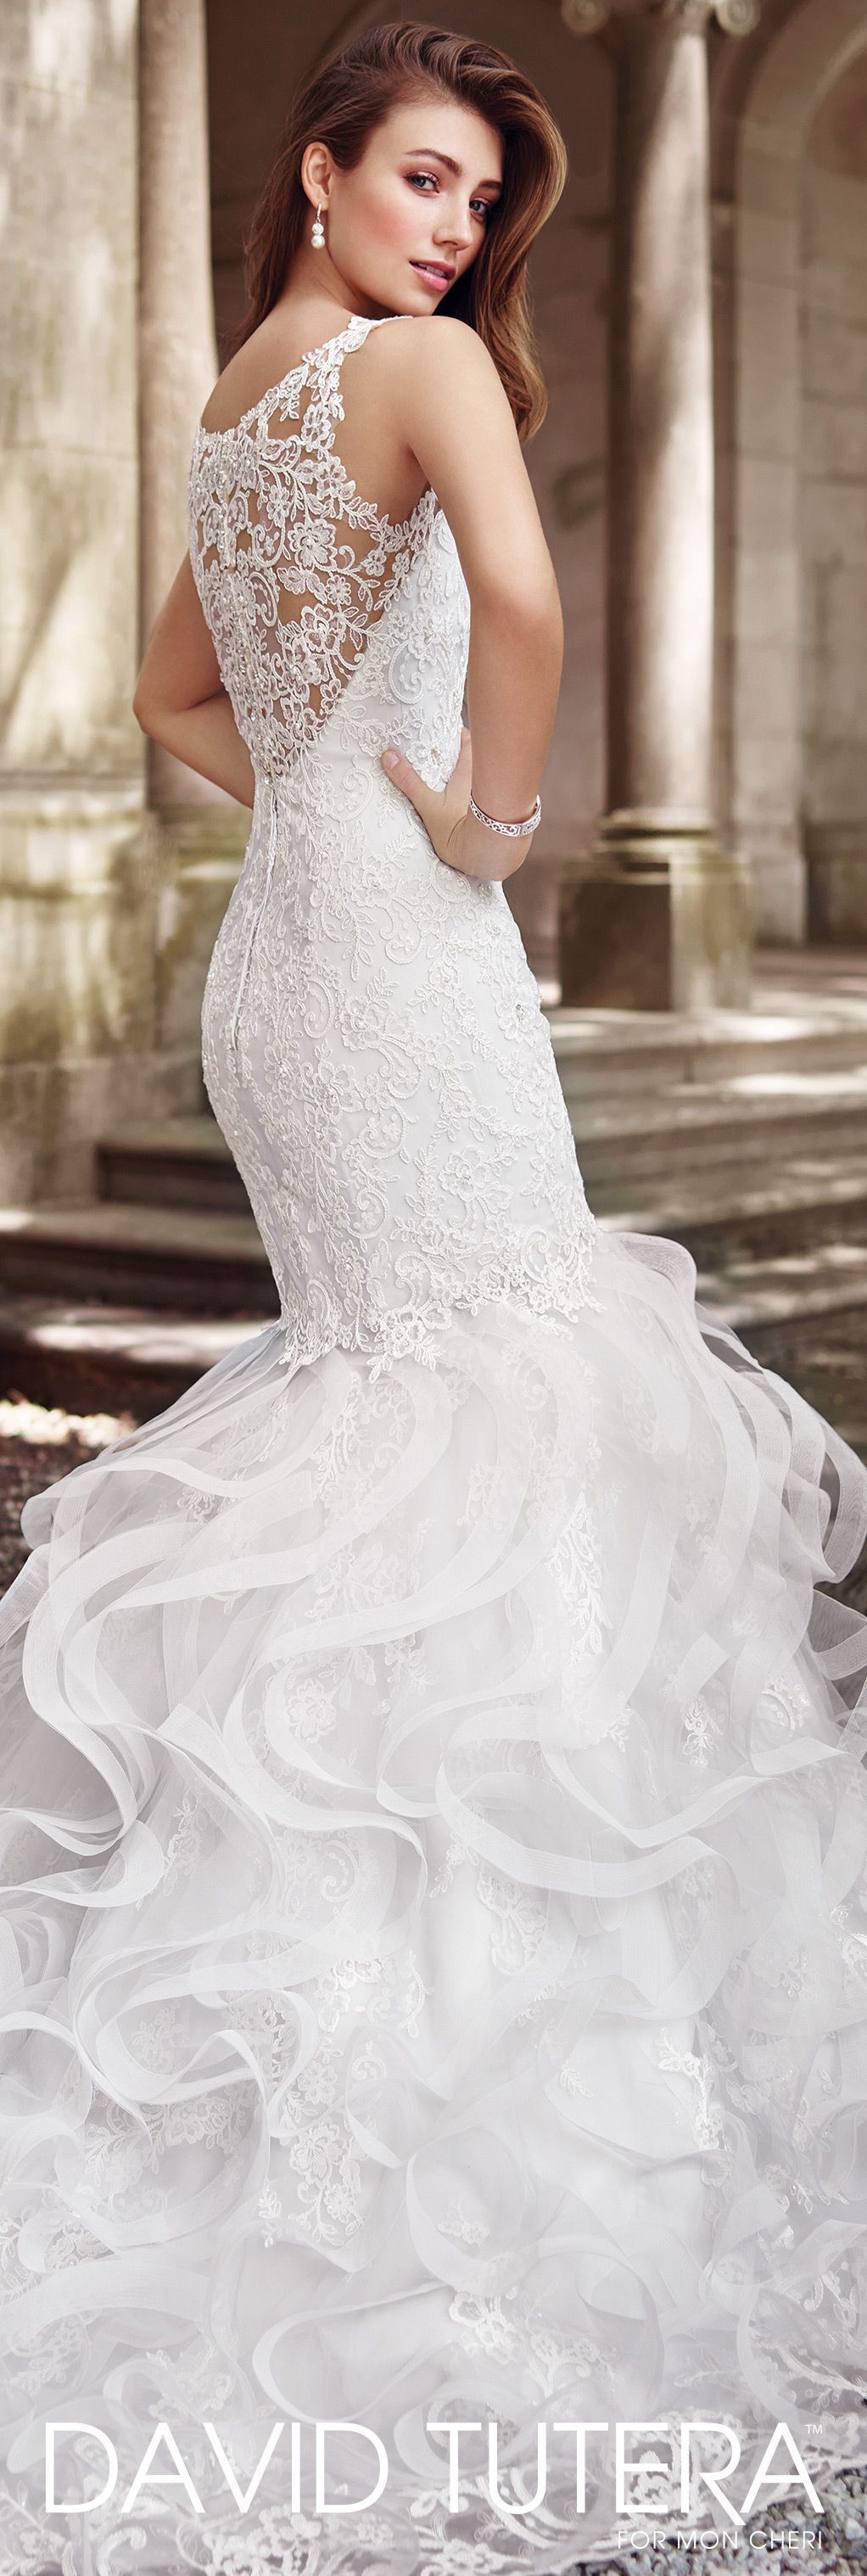 Wedding dresses with ruffles on skirt  Tulle u Lace Mermaid With Ruffled Skirt Wedding Dress  Peta